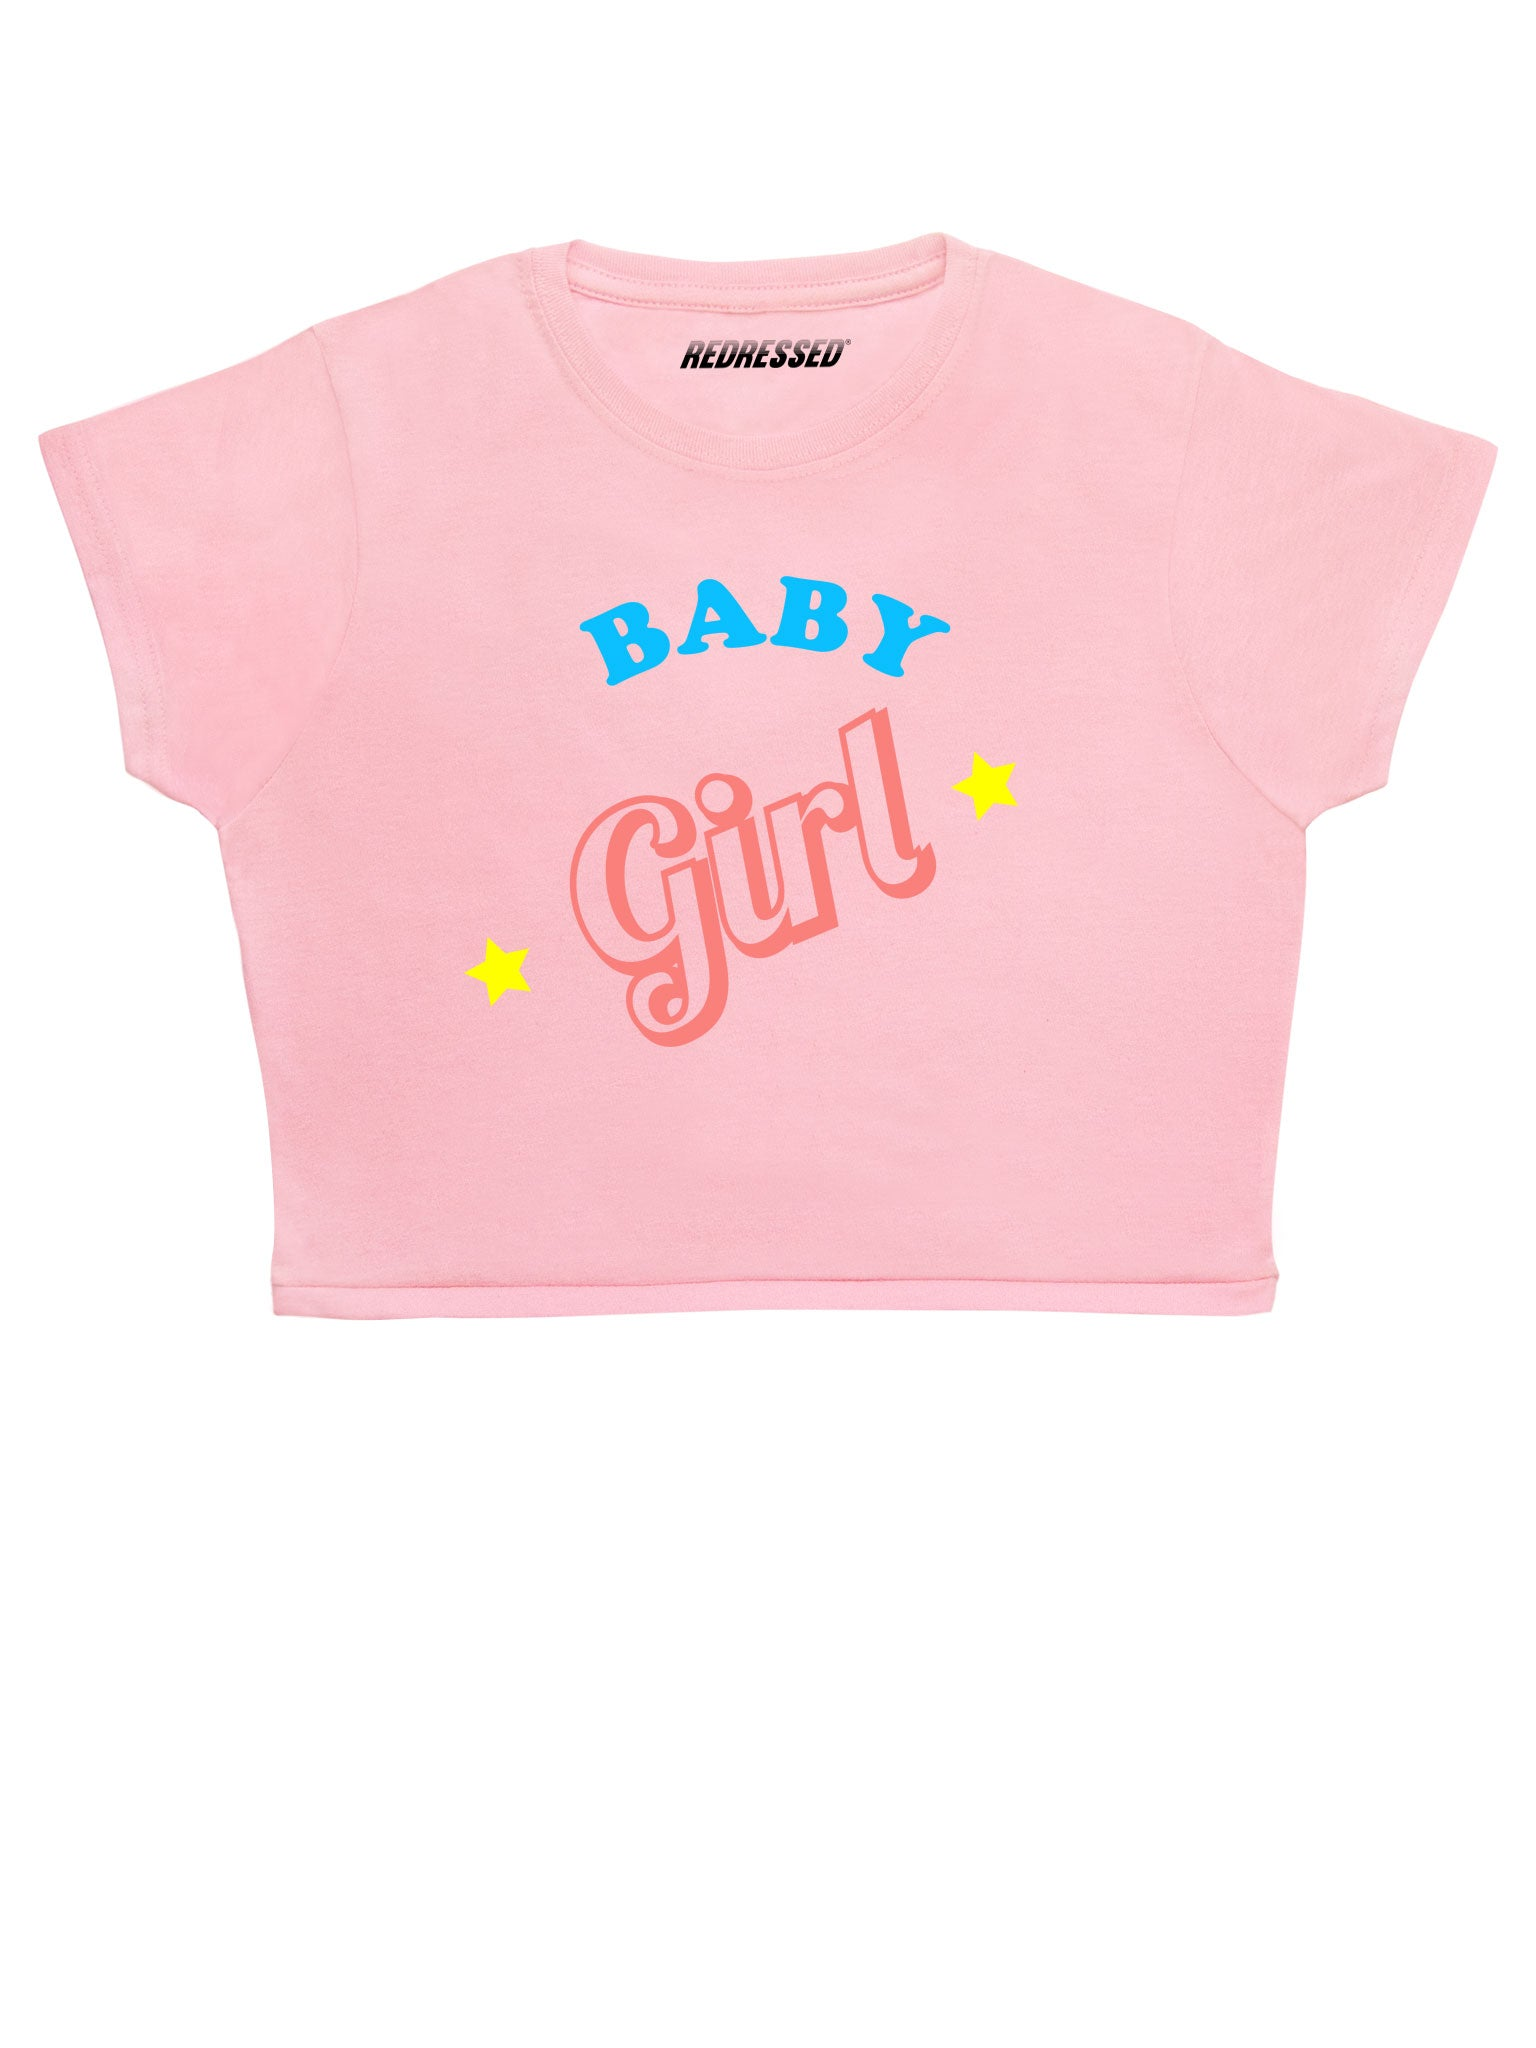 Baby Girl Stars Crop Top